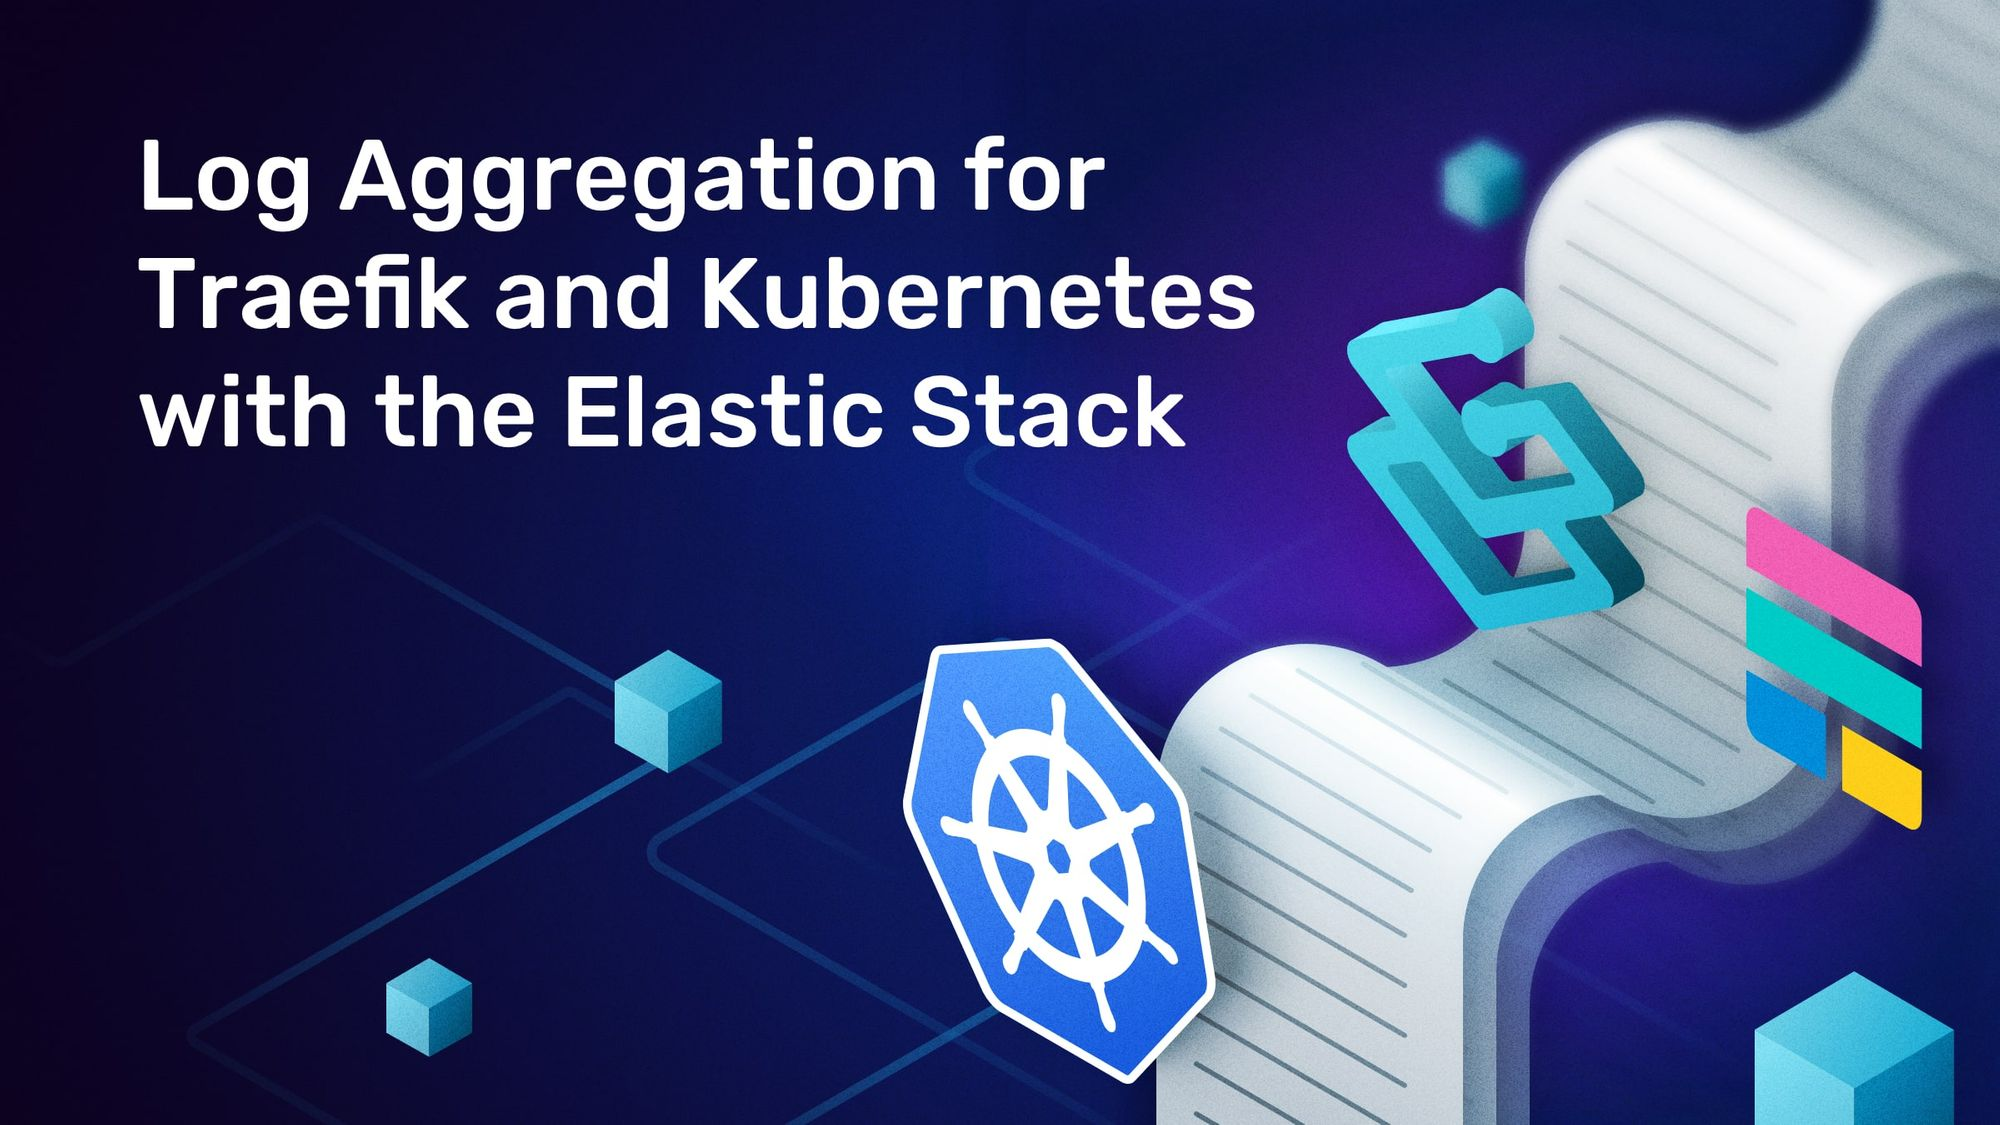 Log Aggregation for Traefik and Kubernetes with the Elastic Stack